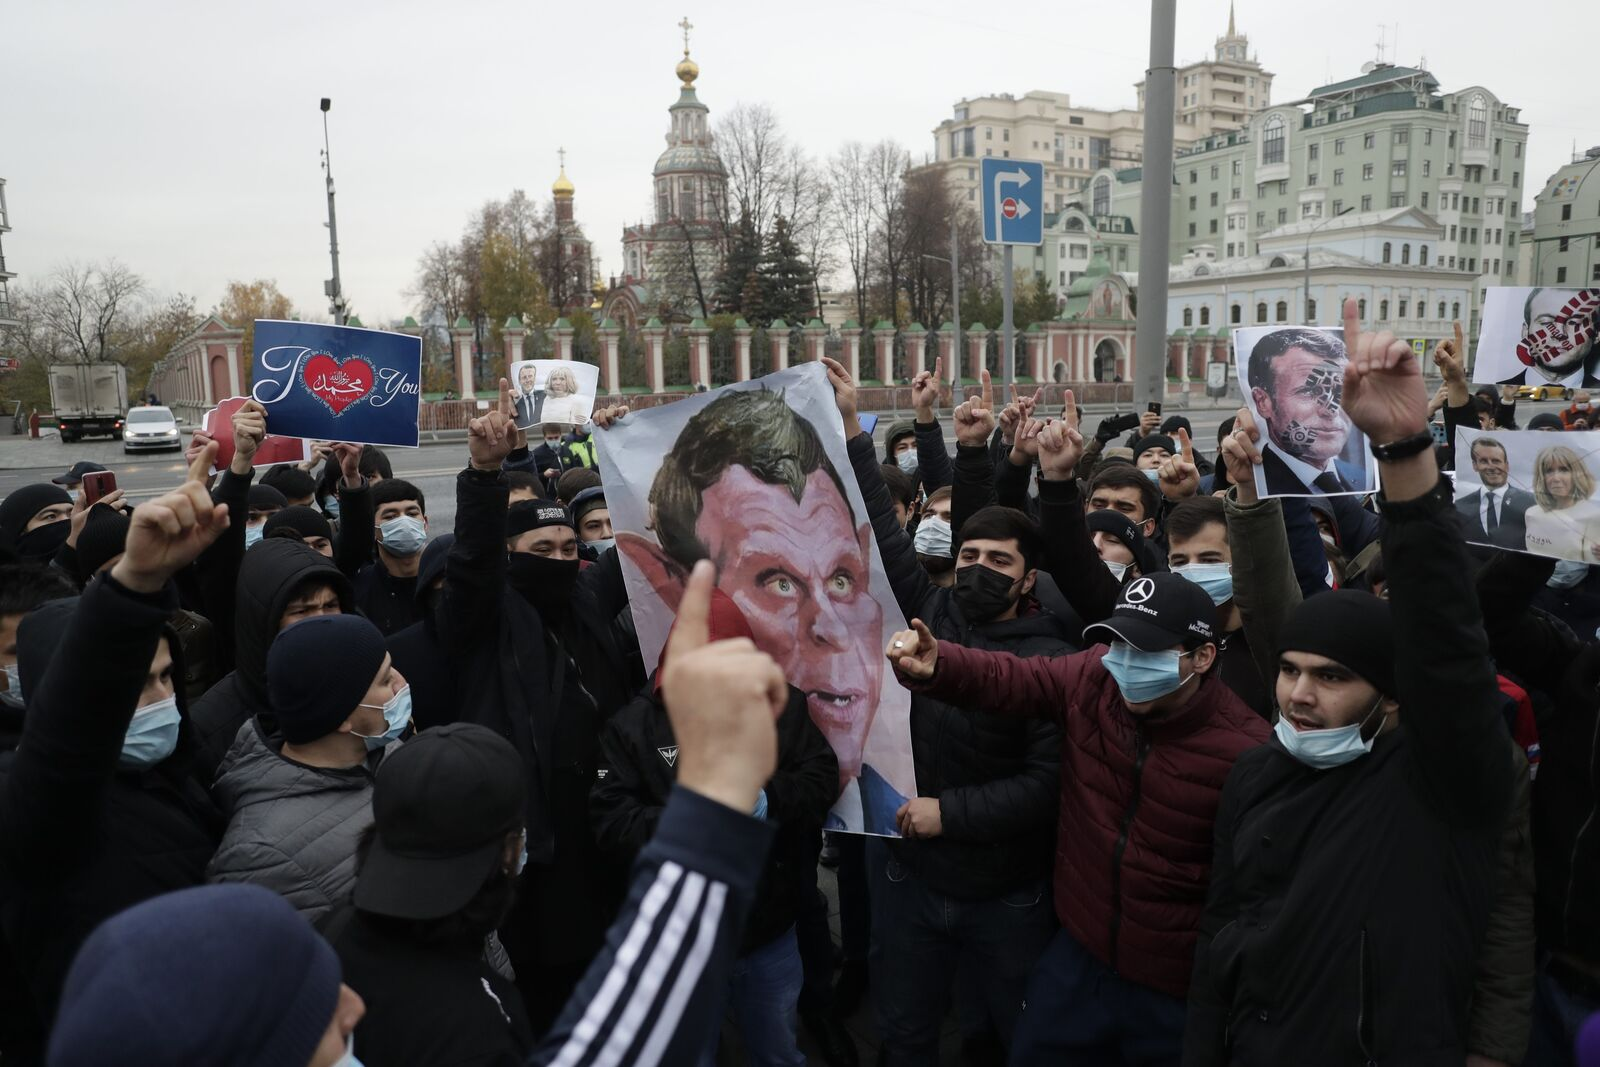 People wearing face masks to help curb the spread of the coronavirus, hold portraits of France President Emmanuel Macron gather outside the French embassy in Moscow to protest against caricatures of the Prophet Muhammad, Russia, Friday, Oct. 30, 2020.(AP Photo/Pavel Golovkin)